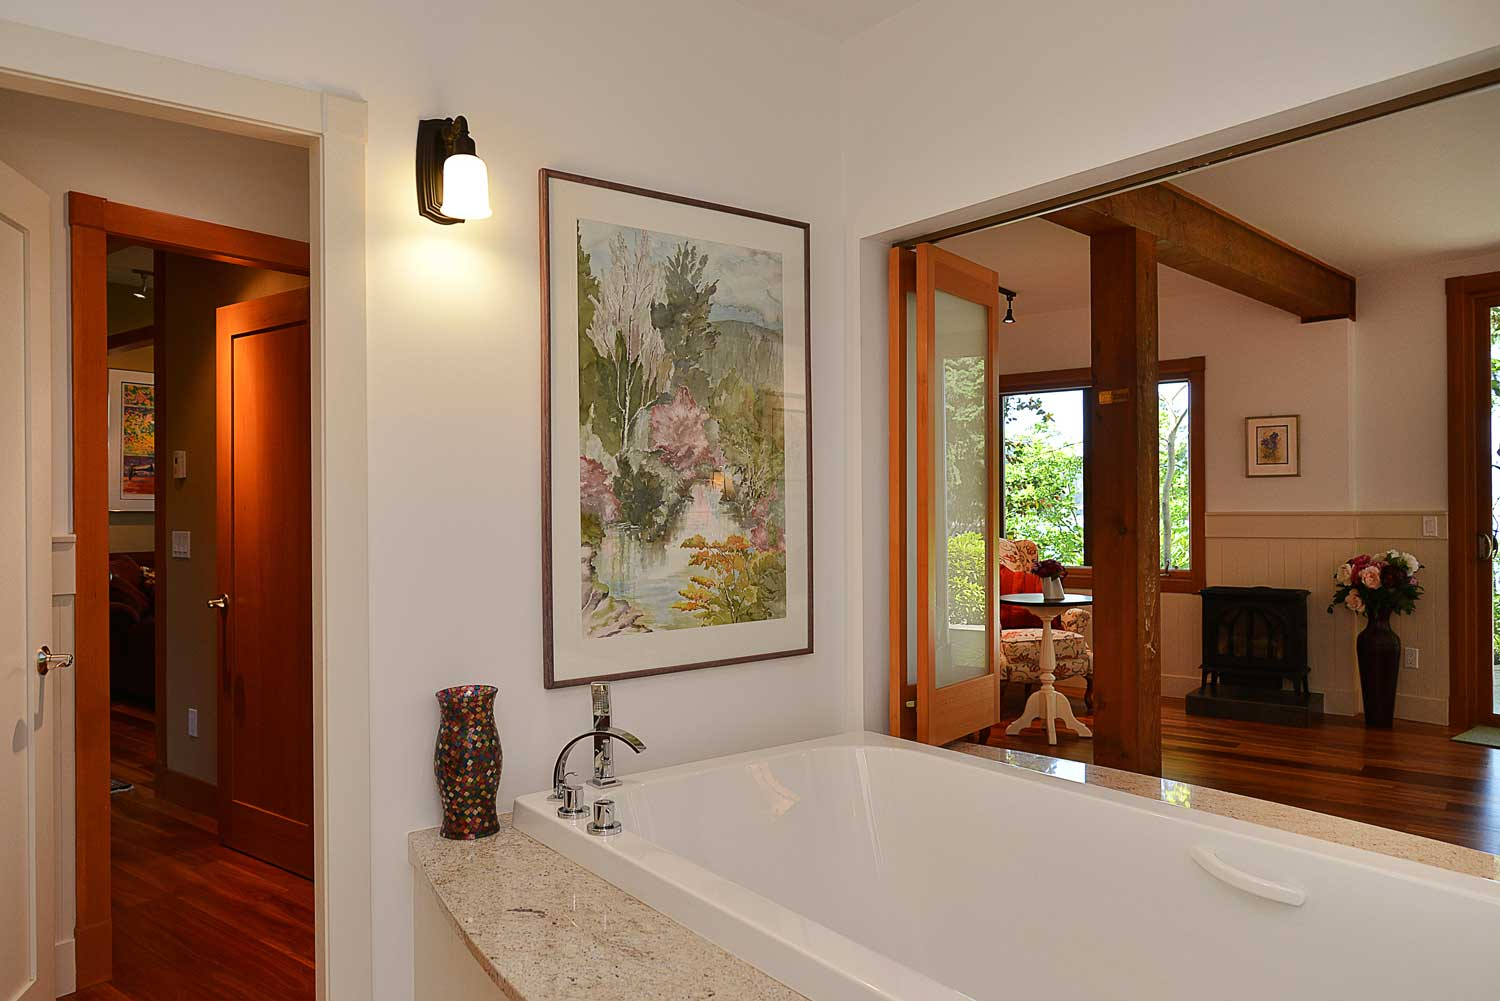 This fully furnished house for rent has a tub in the downstairs bathroom with a window that opens to view into the bedroom.